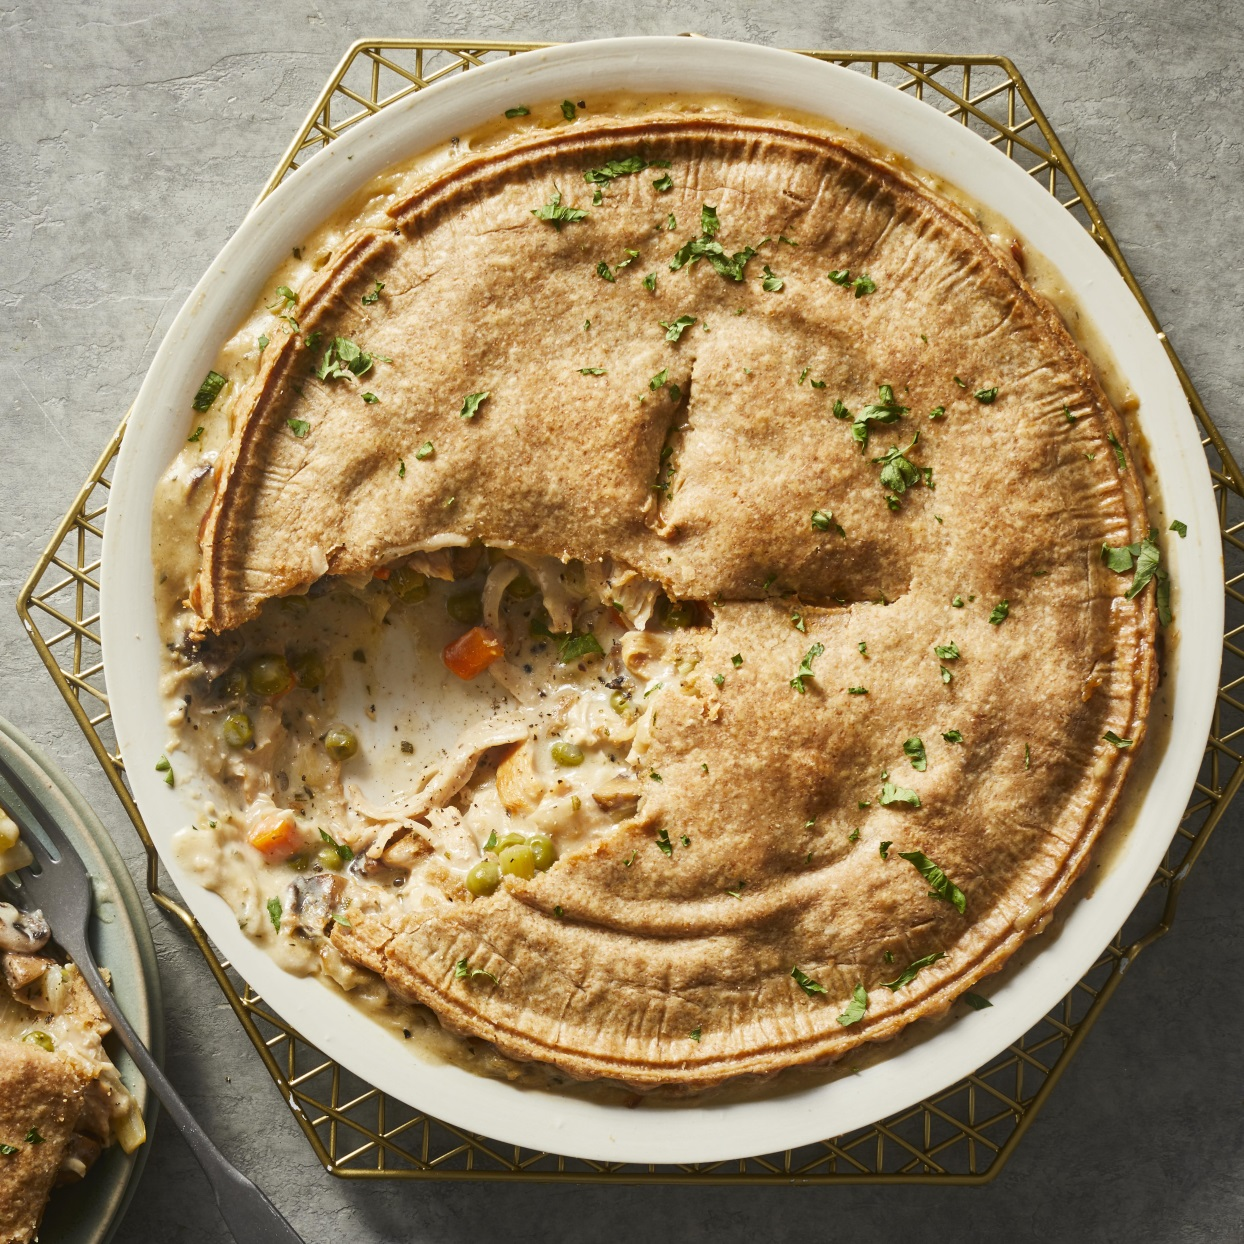 You might look forward to the days after Thanksgiving even more than the holiday itself with this easy turkey potpie recipe that's the perfect use for leftover turkey and extra vegetables like carrots and onions you might have on hand from the holiday. The pie is loaded with veggies and a creamy sauce, then topped with a prepared whole-wheat crust so there's no need to make dough. No leftover cooked turkey? This healthy potpie is just as delicious with chicken. Serve it up any time you need a dose of comfort food for dinner.